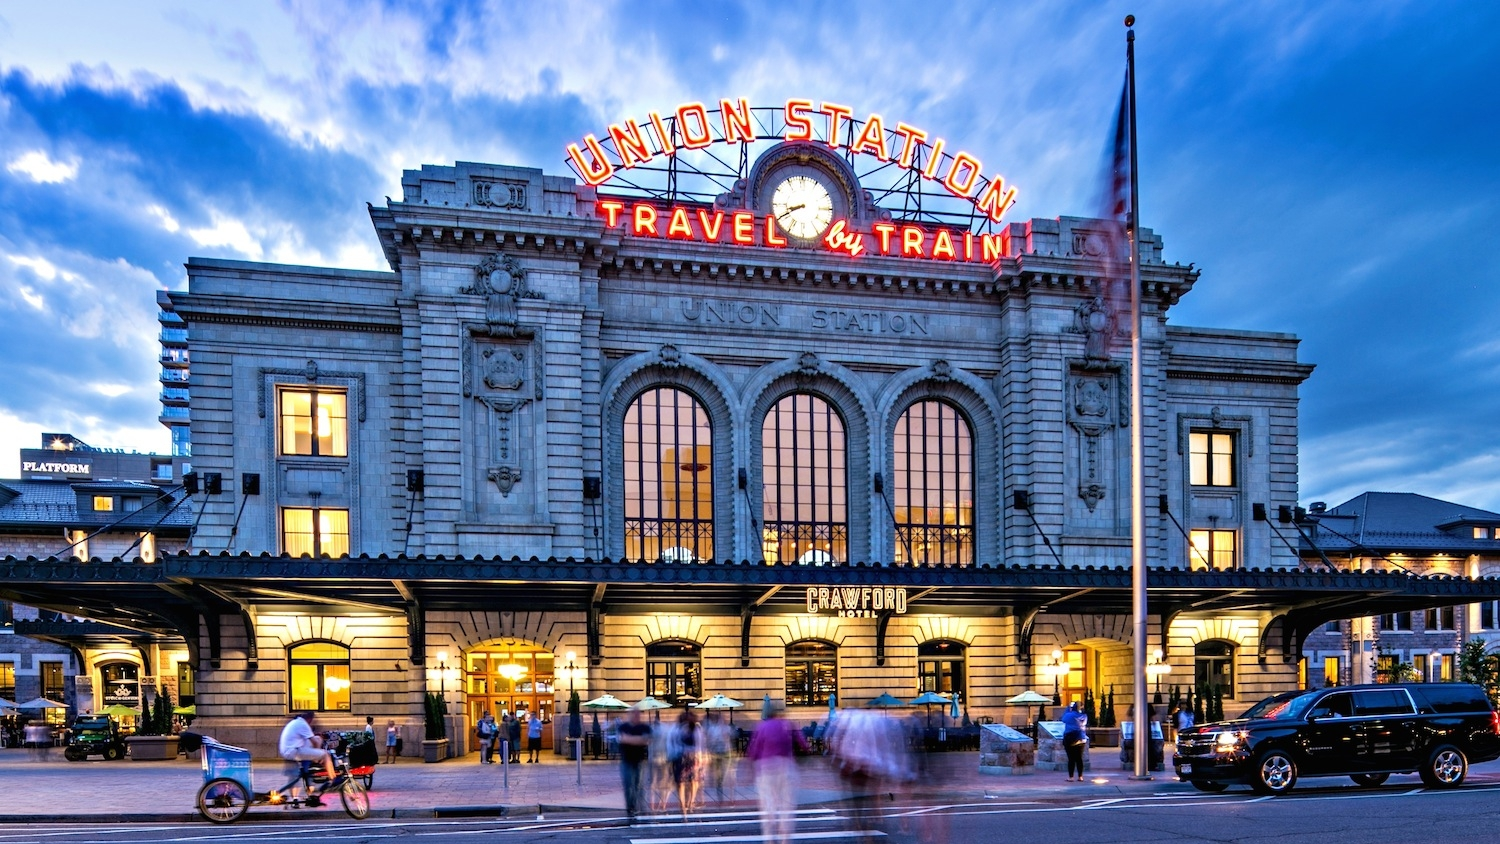 denver-union-station-04d27625-5f02-42df-8f95-420198c9b5e0